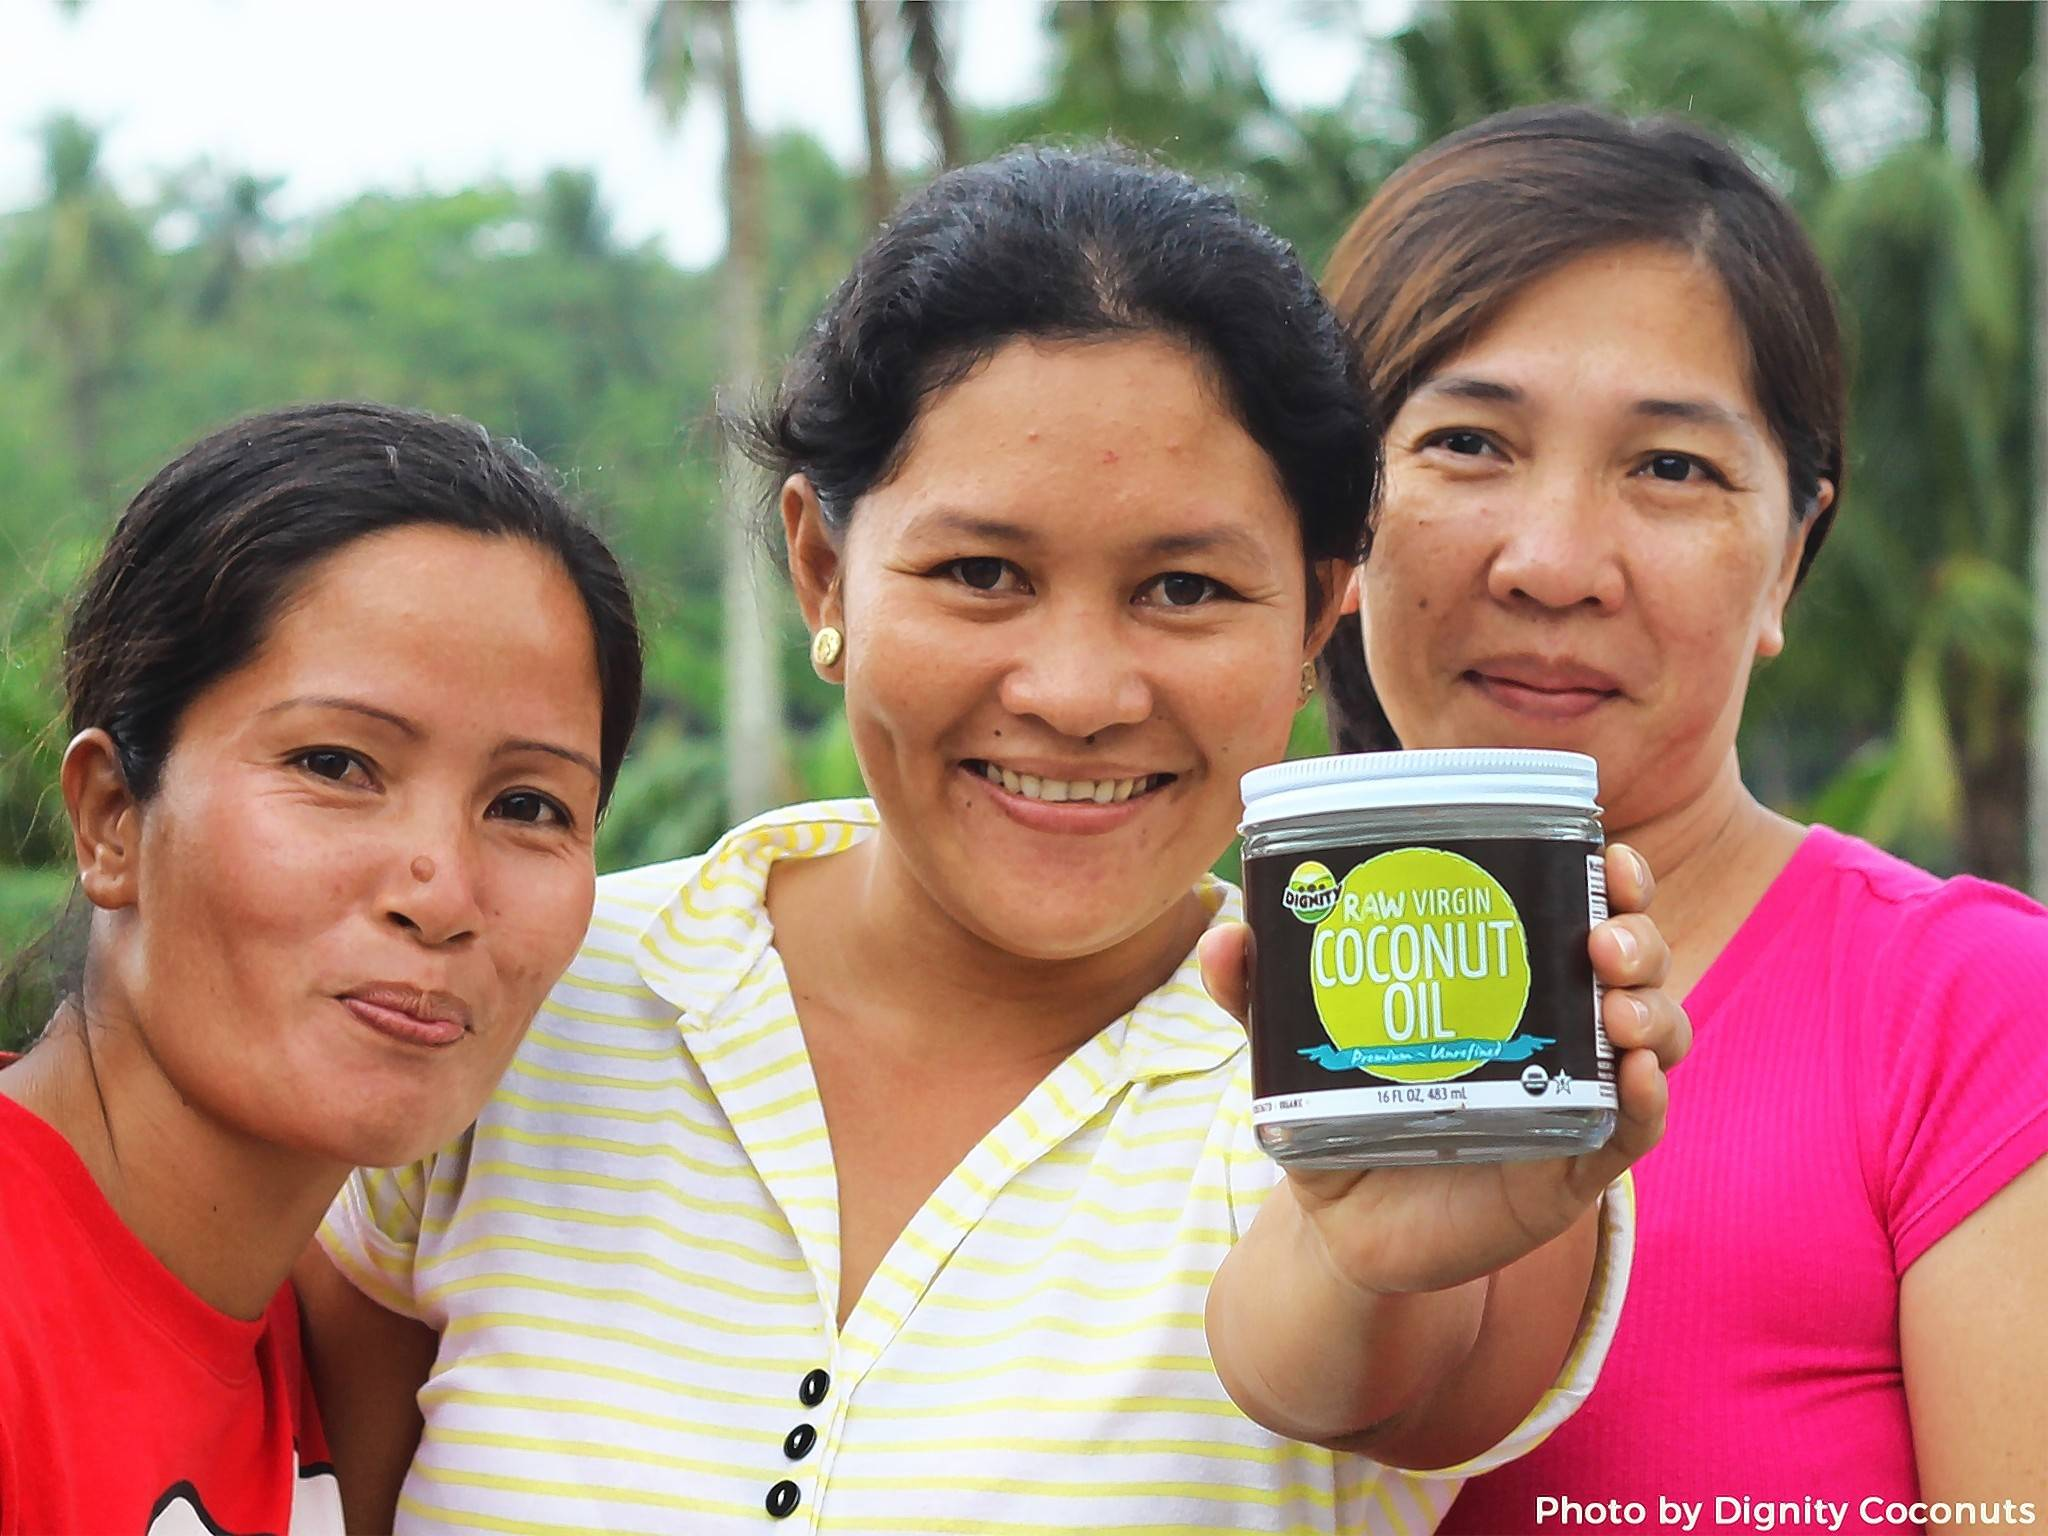 Employees of the Dignity Coconut plant in the Philippines with one of the products that is reviving the economy in their community. The company was started by Vineyard Church of Elgin members.